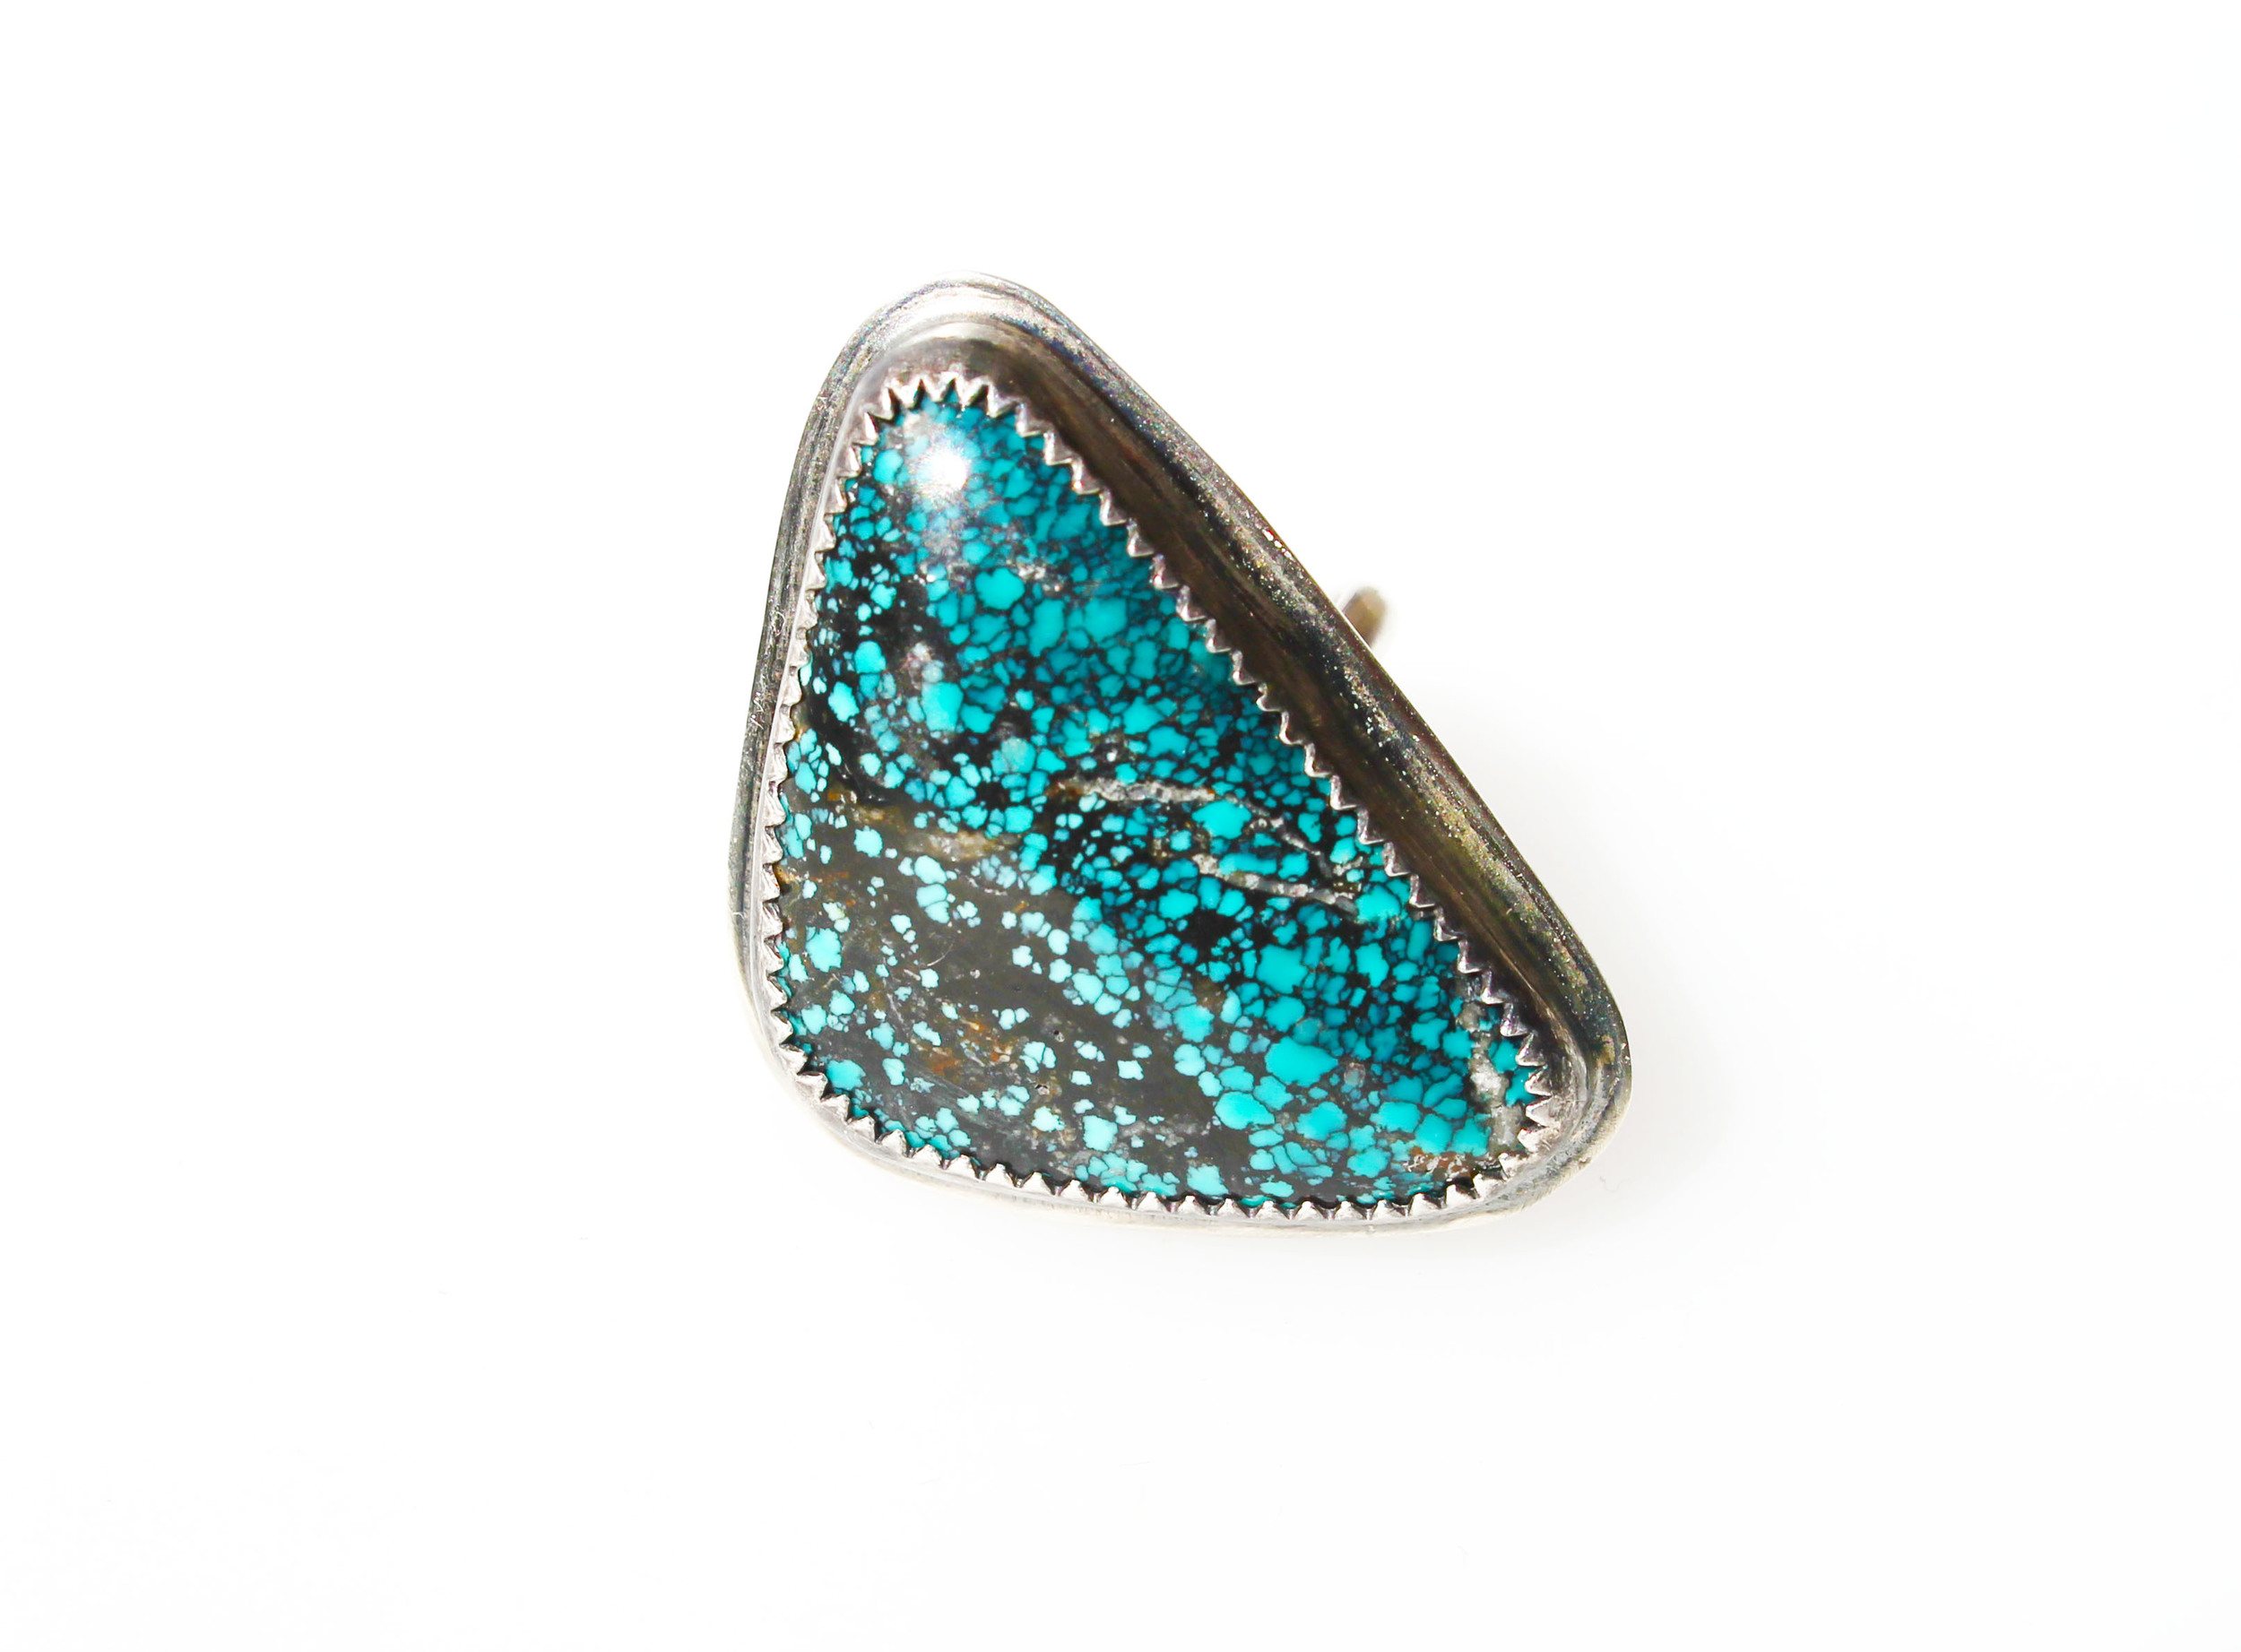 starry night turquoise rings | Crow Jane Jewelry